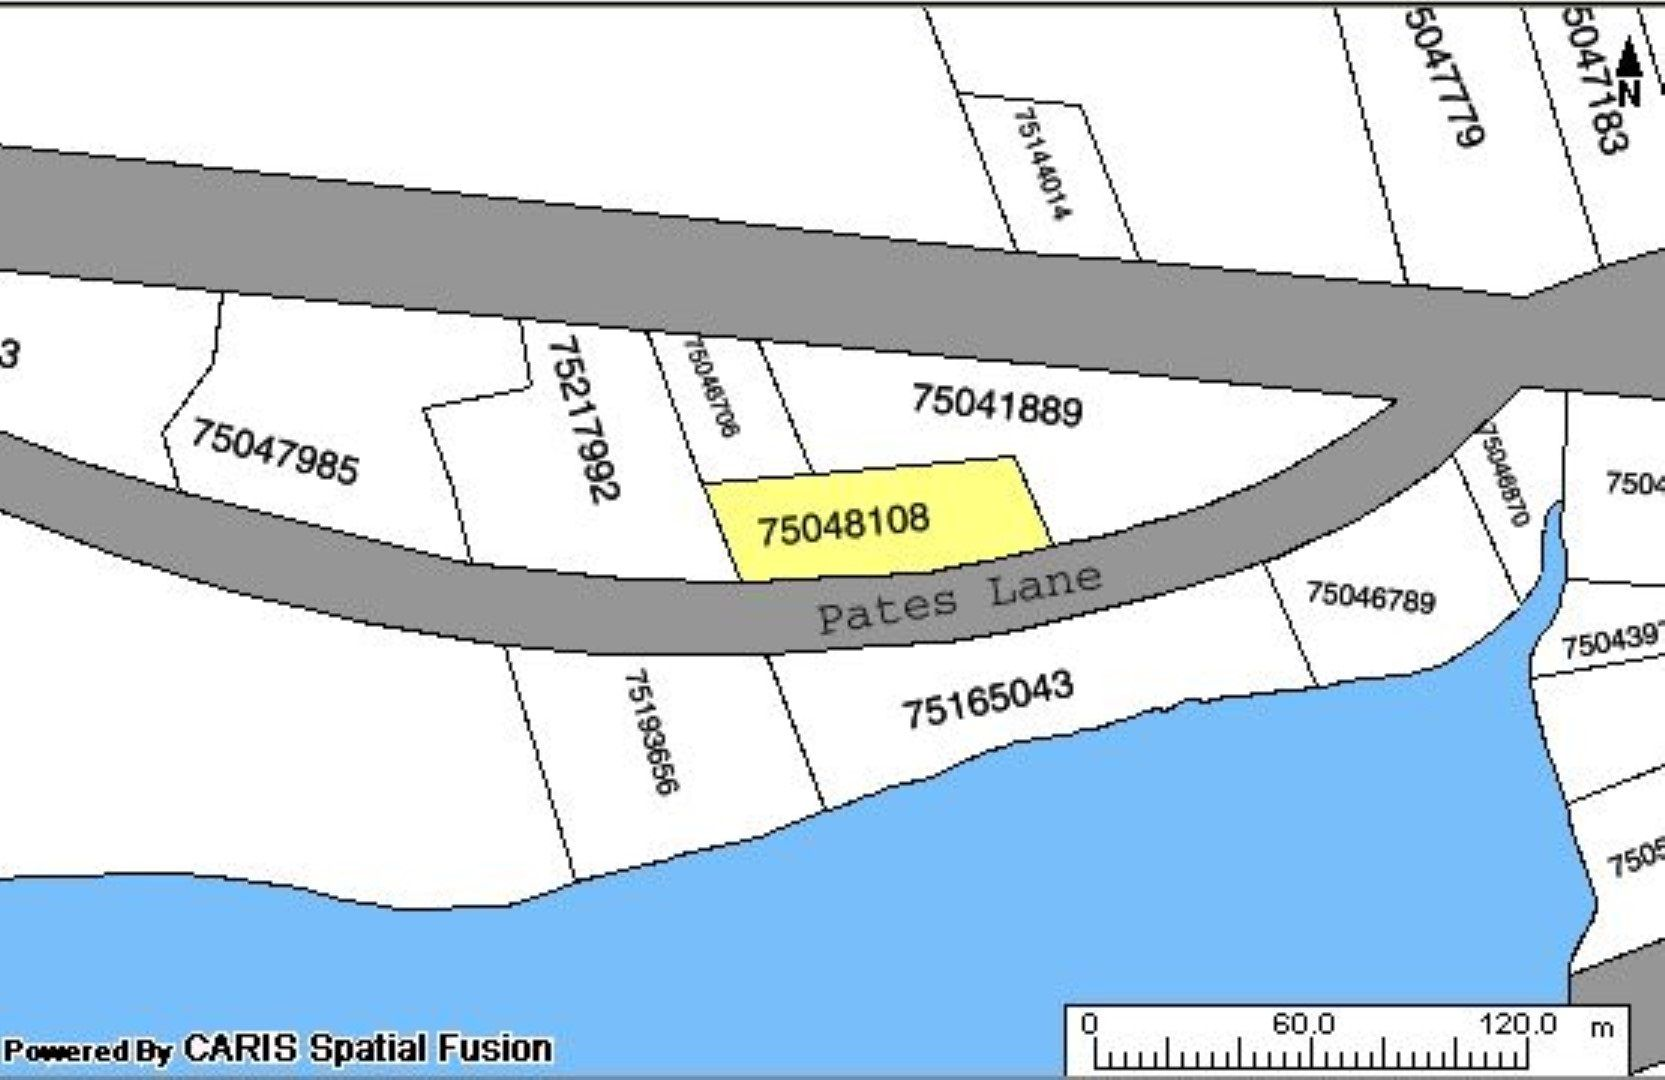 Main Photo: 93 Pates Lane in River Bourgeois: 305-Richmond County / St. Peters & Area Vacant Land for sale (Highland Region)  : MLS®# 202108421